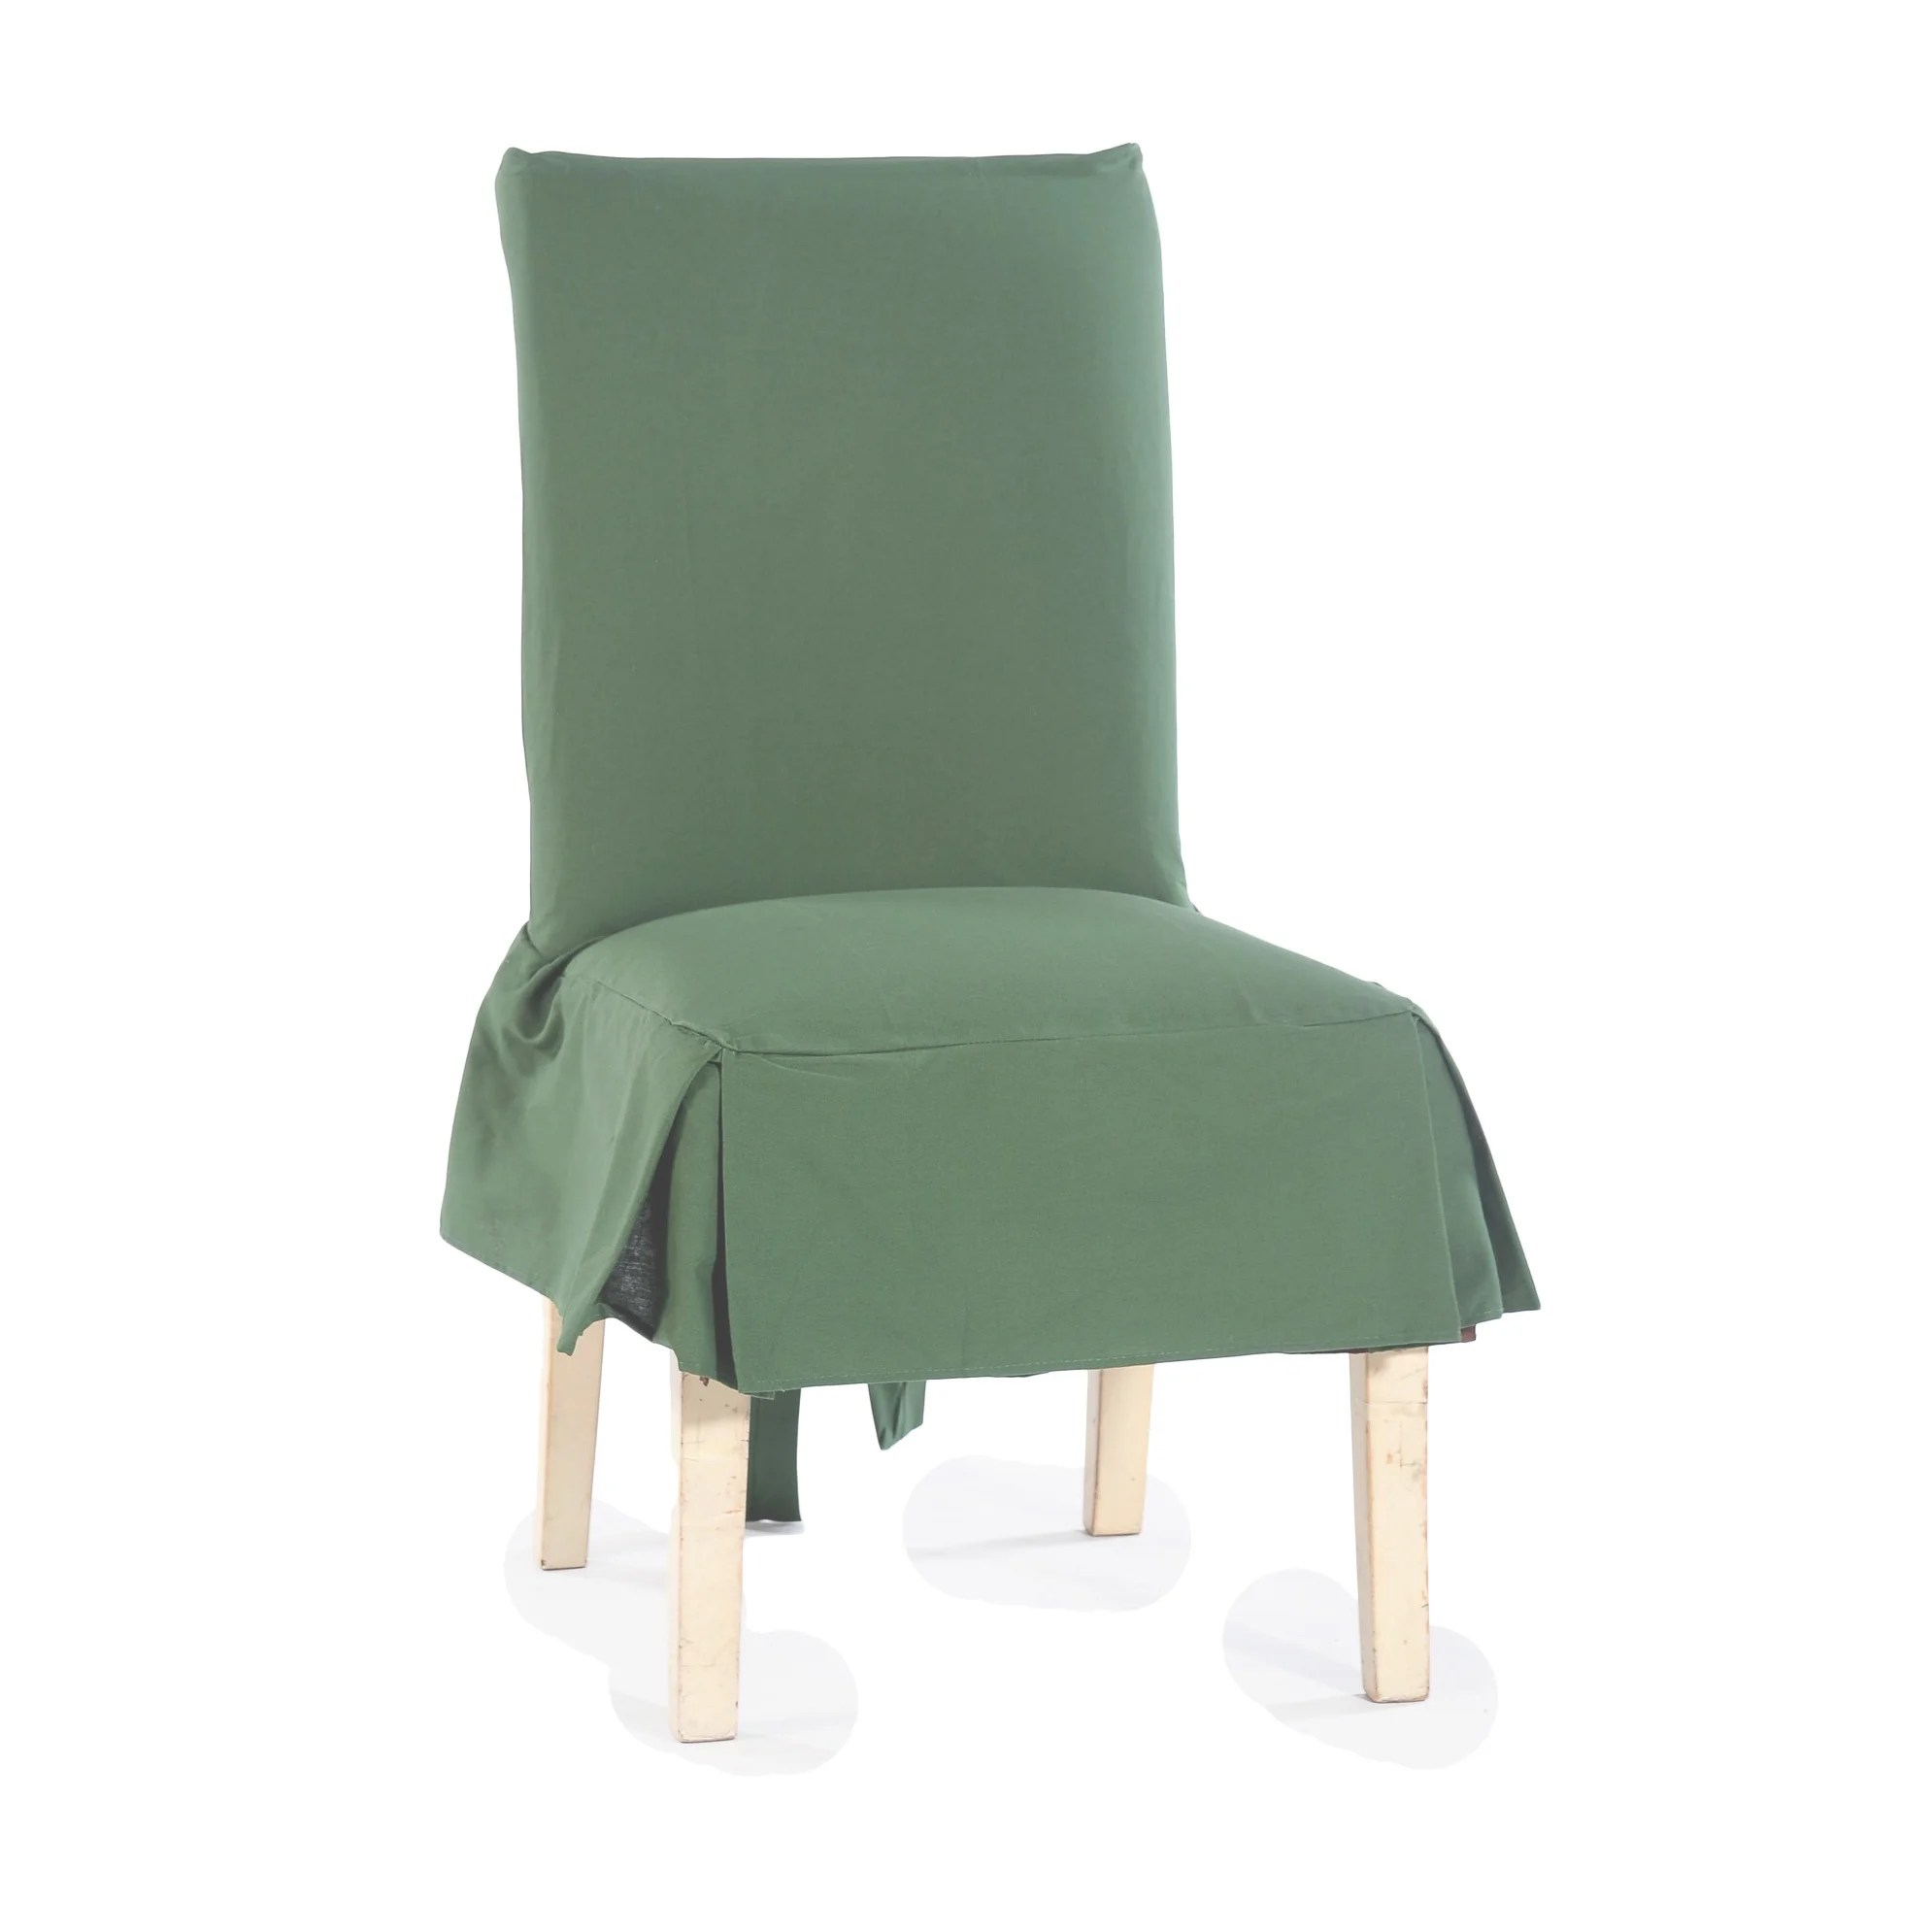 dining chair covers set of 6 india wedding kent classic cotton duck slipcovers 2 ebay